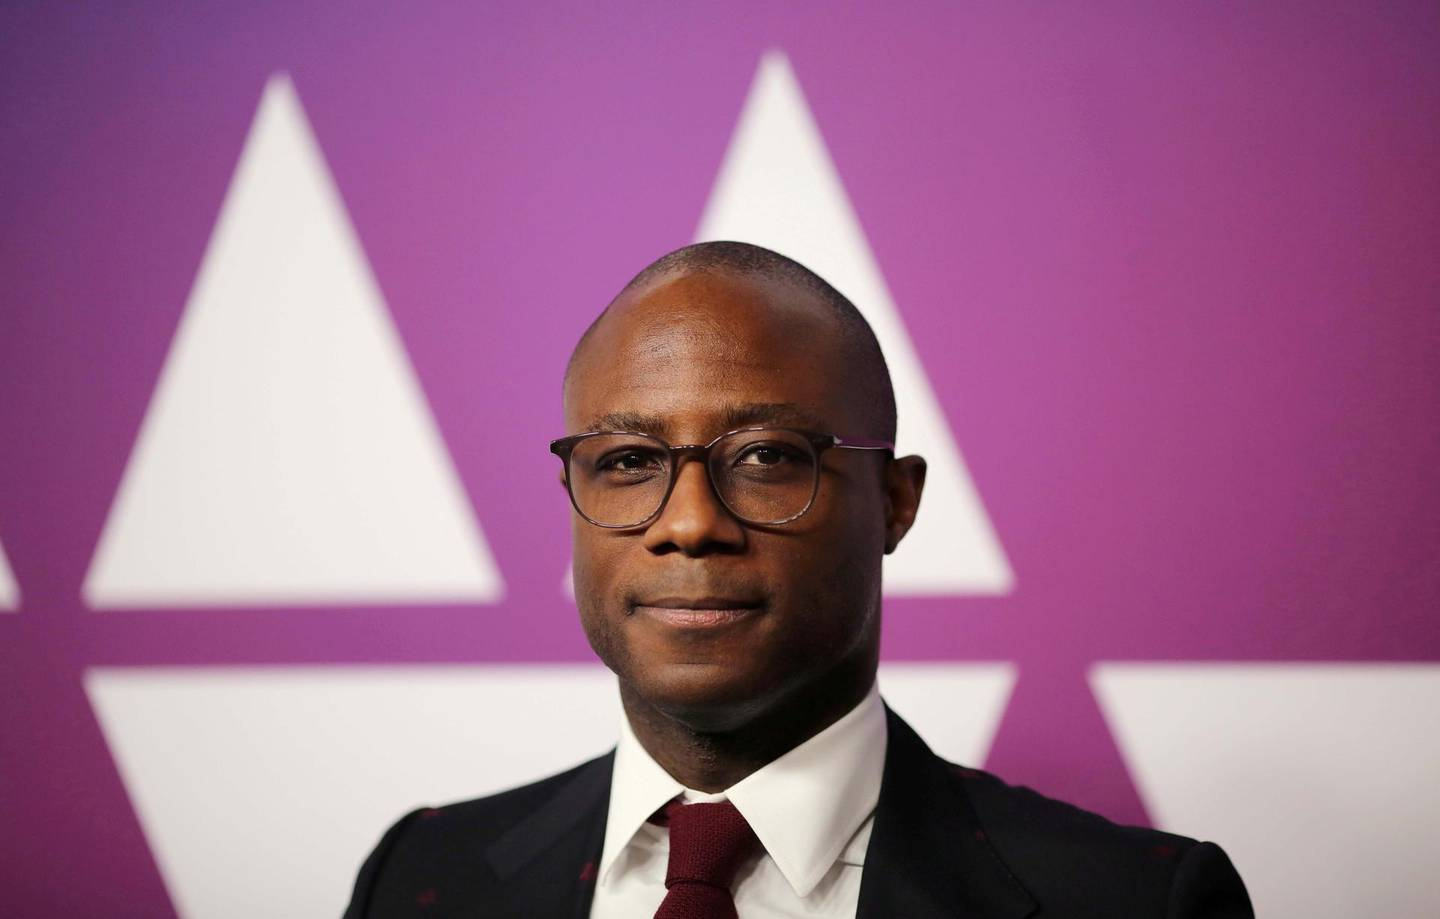 FILE PHOTO: Director Barry Jenkins attends the 91st Oscars Nominees Luncheon in Beverly Hills, California, U.S. February 4, 2019. REUTERS/David McNew/File Photo